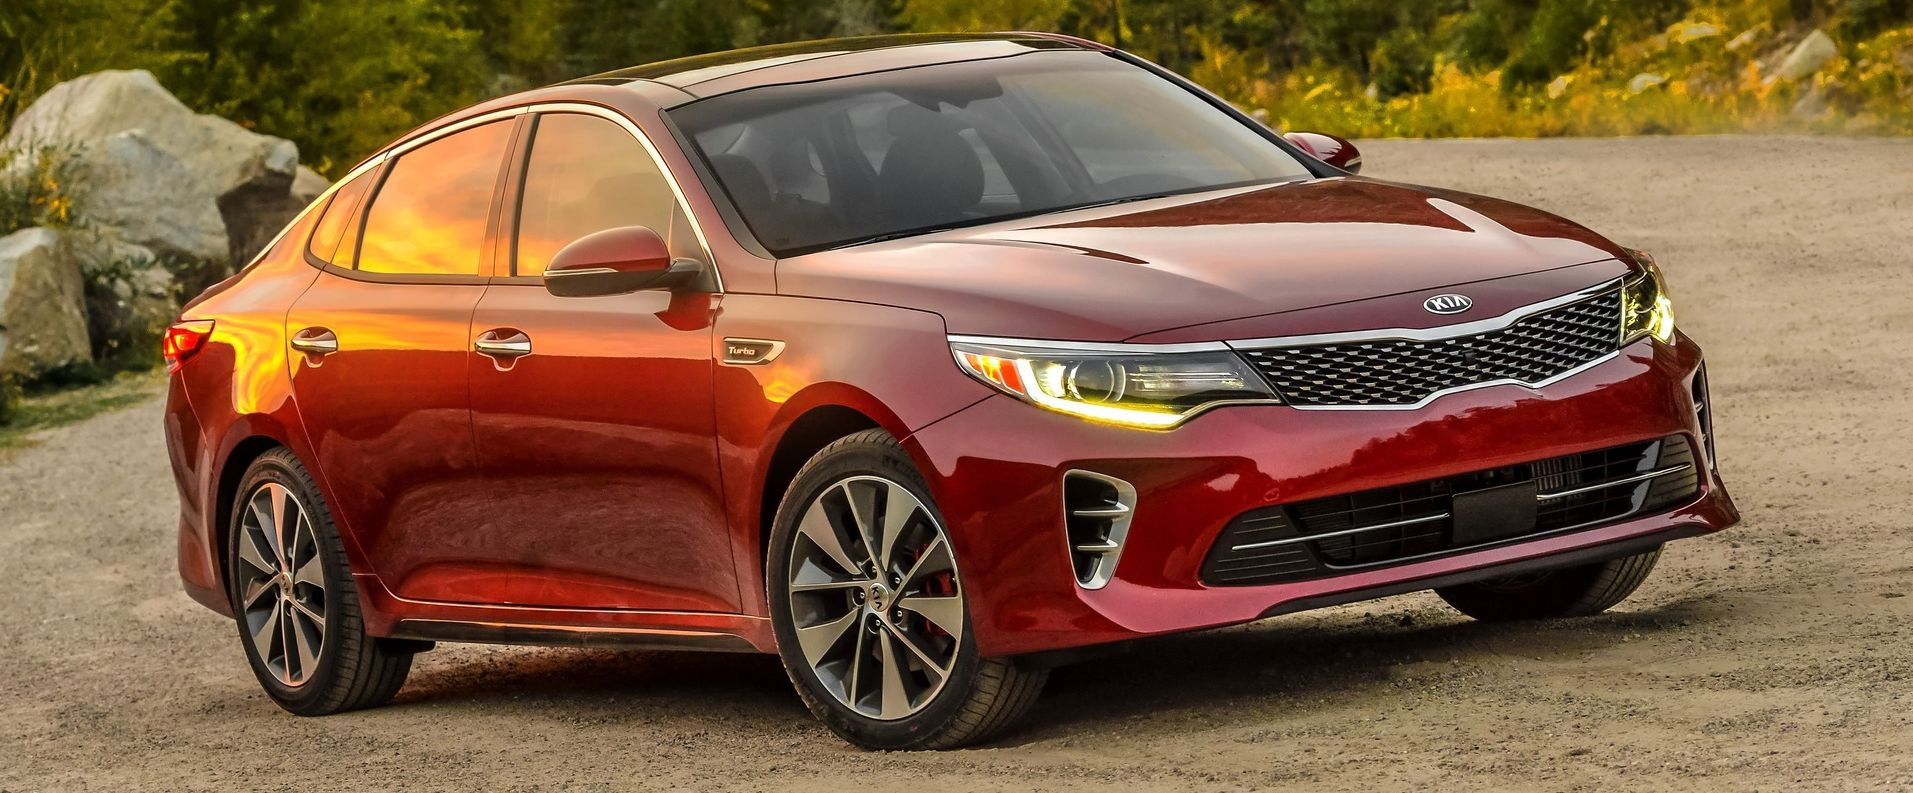 blue drive sedan family optima kia heaven limited c sxl sx my he quick review said